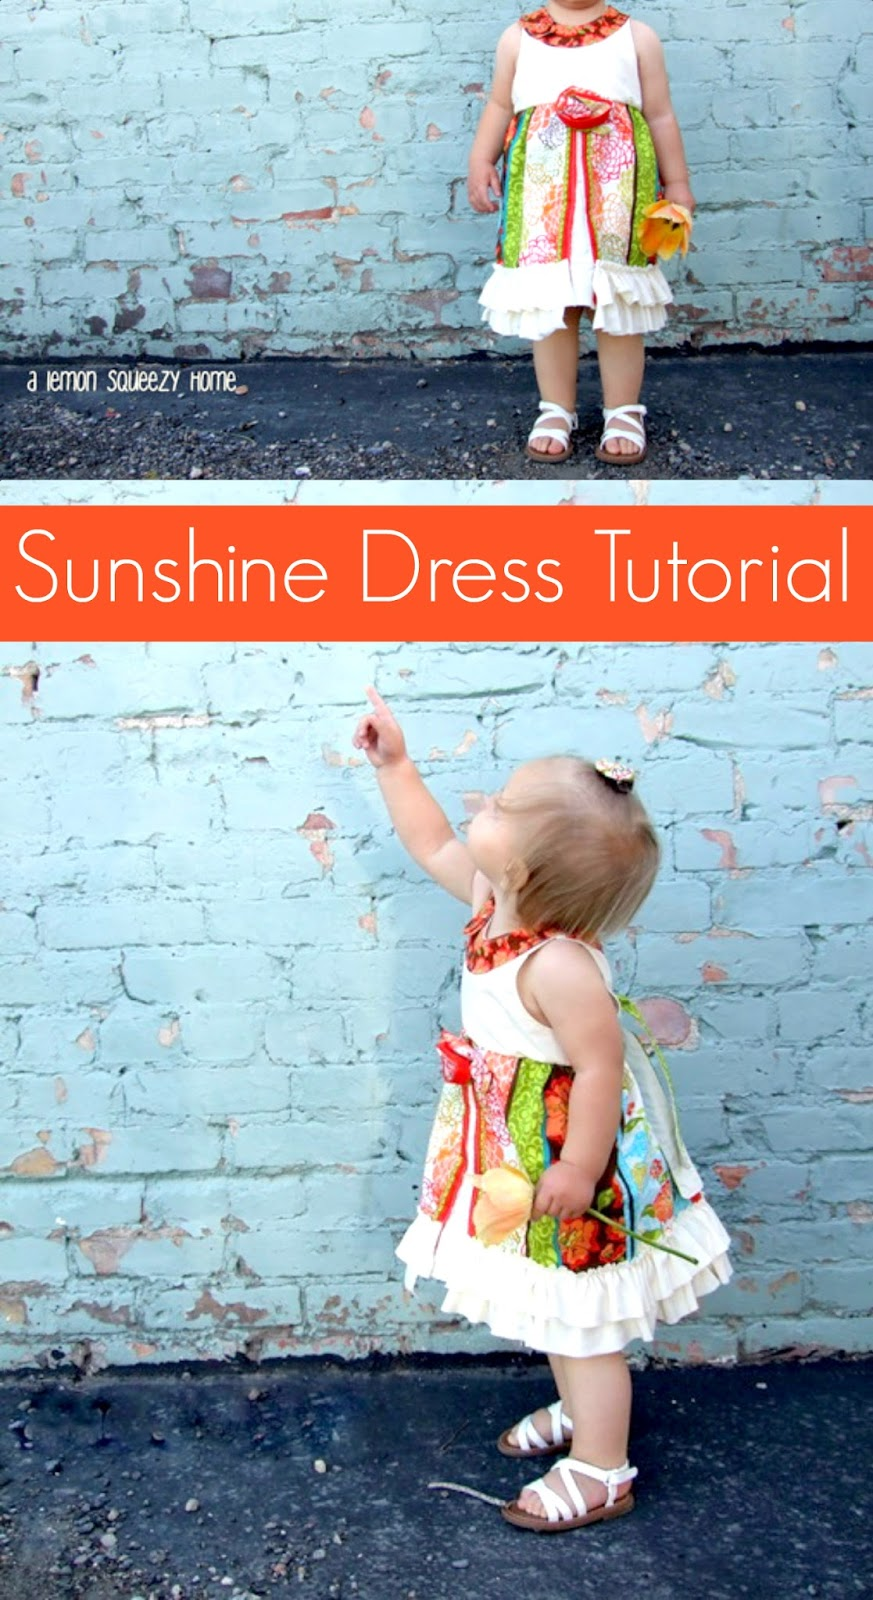 The Sunshine Dress Tutorial {lemon squeezy home}